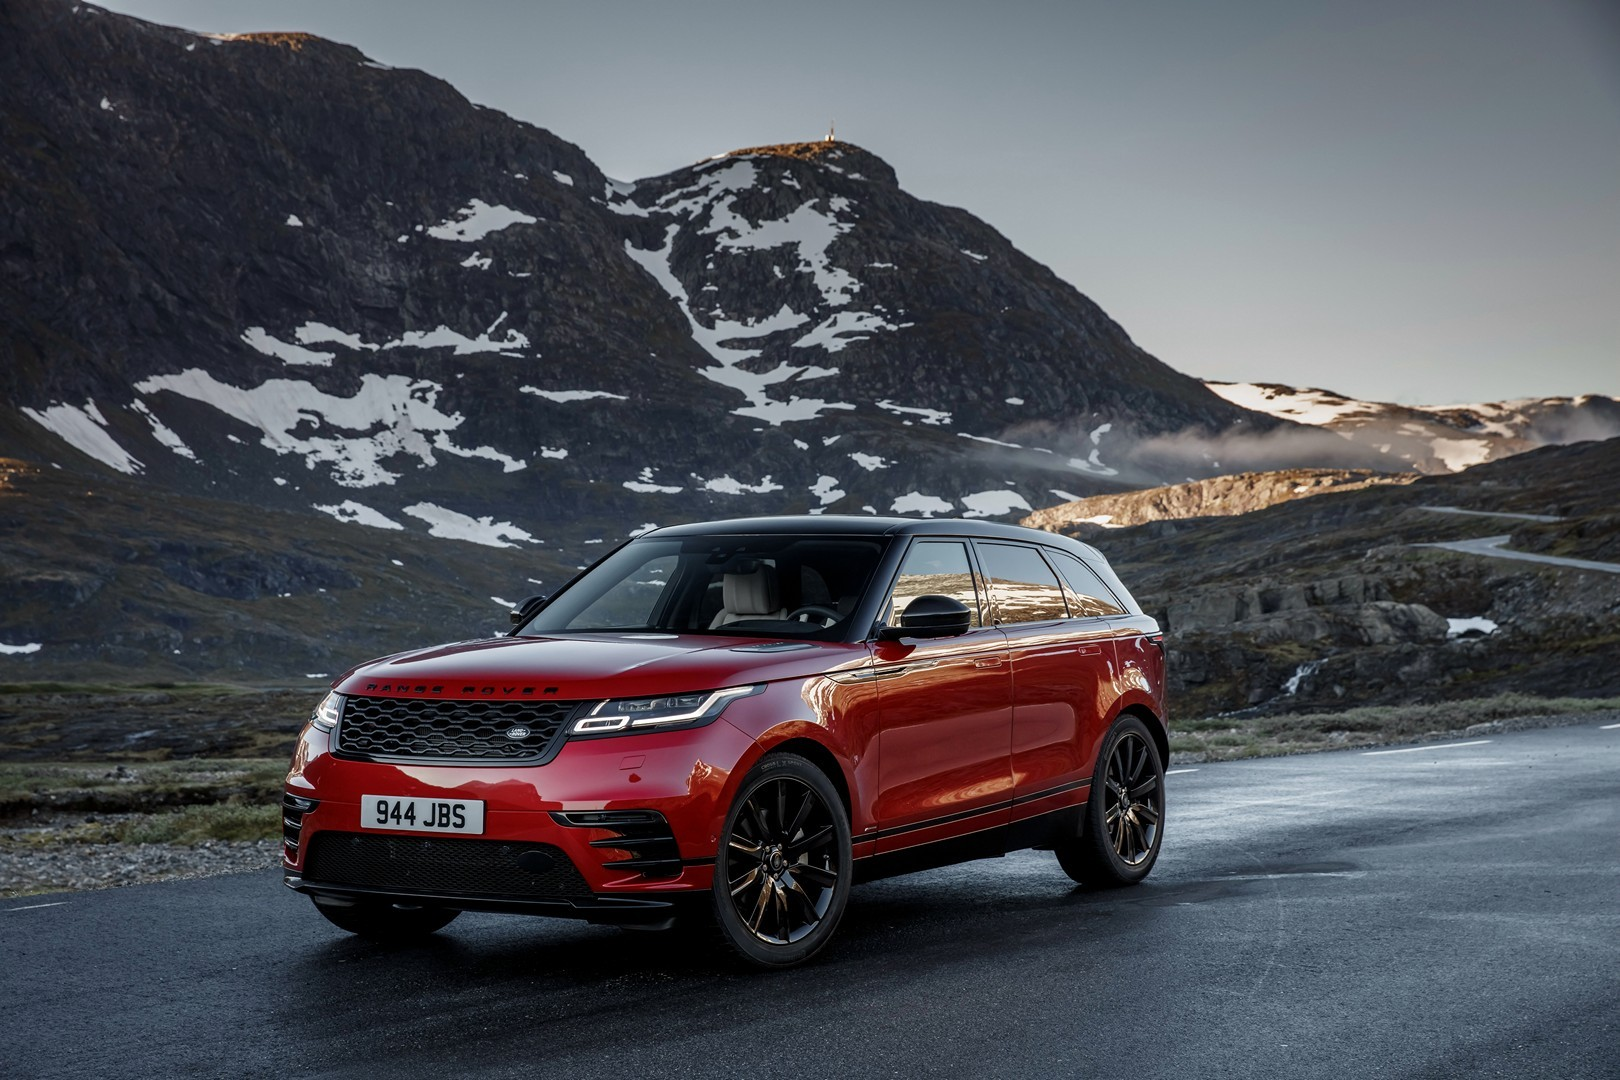 range rover velar order books open with south african pricing. Black Bedroom Furniture Sets. Home Design Ideas